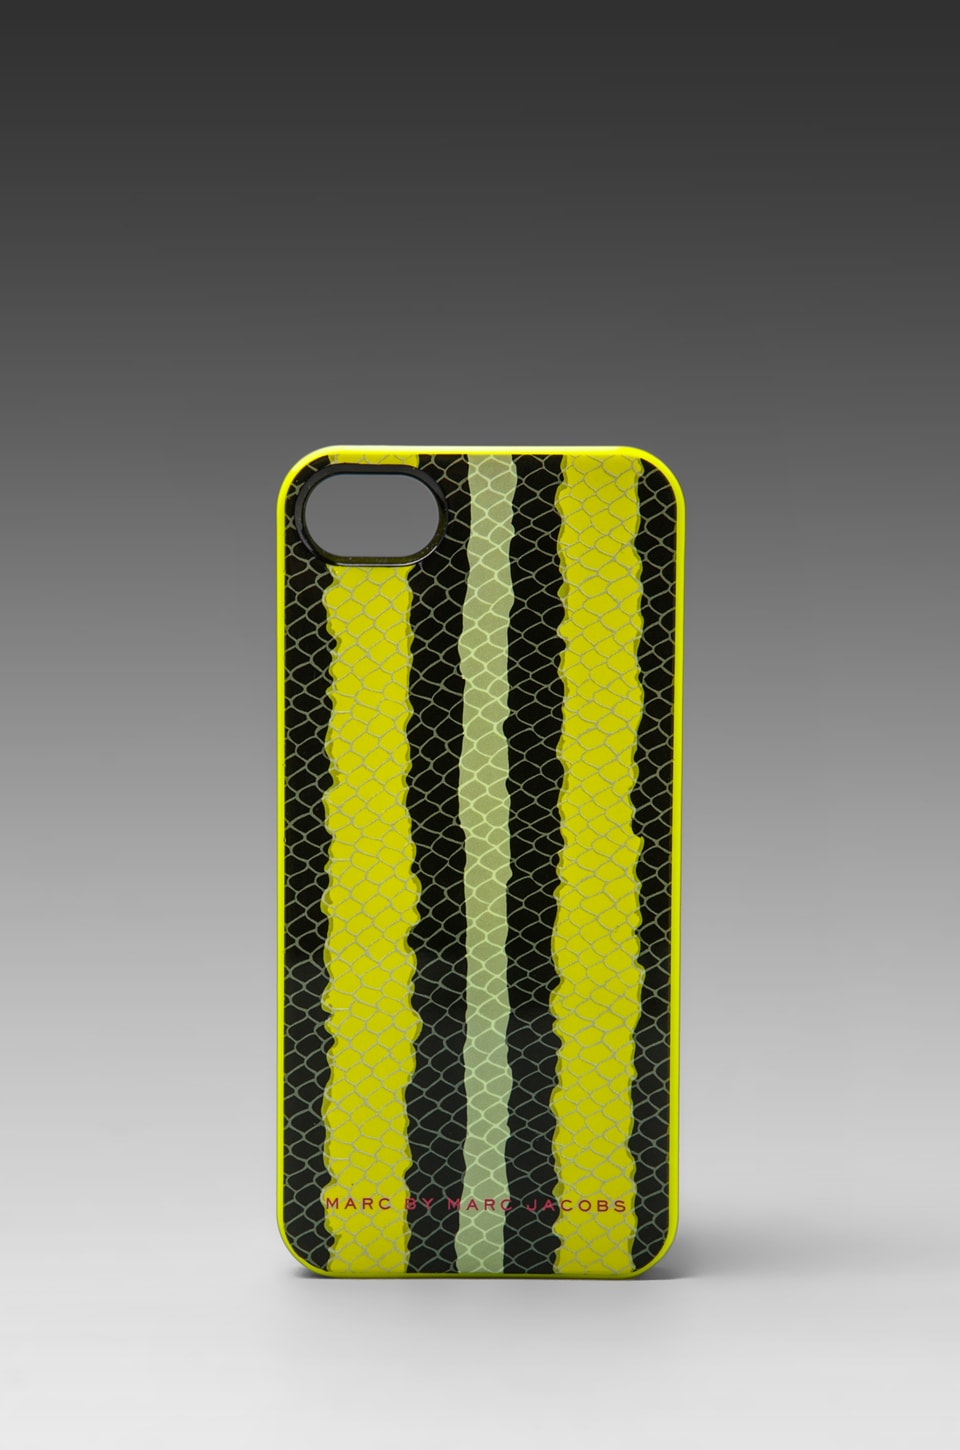 Marc by Marc Jacobs Anemone Stripe Phone Cases in Safety Multi Yellow